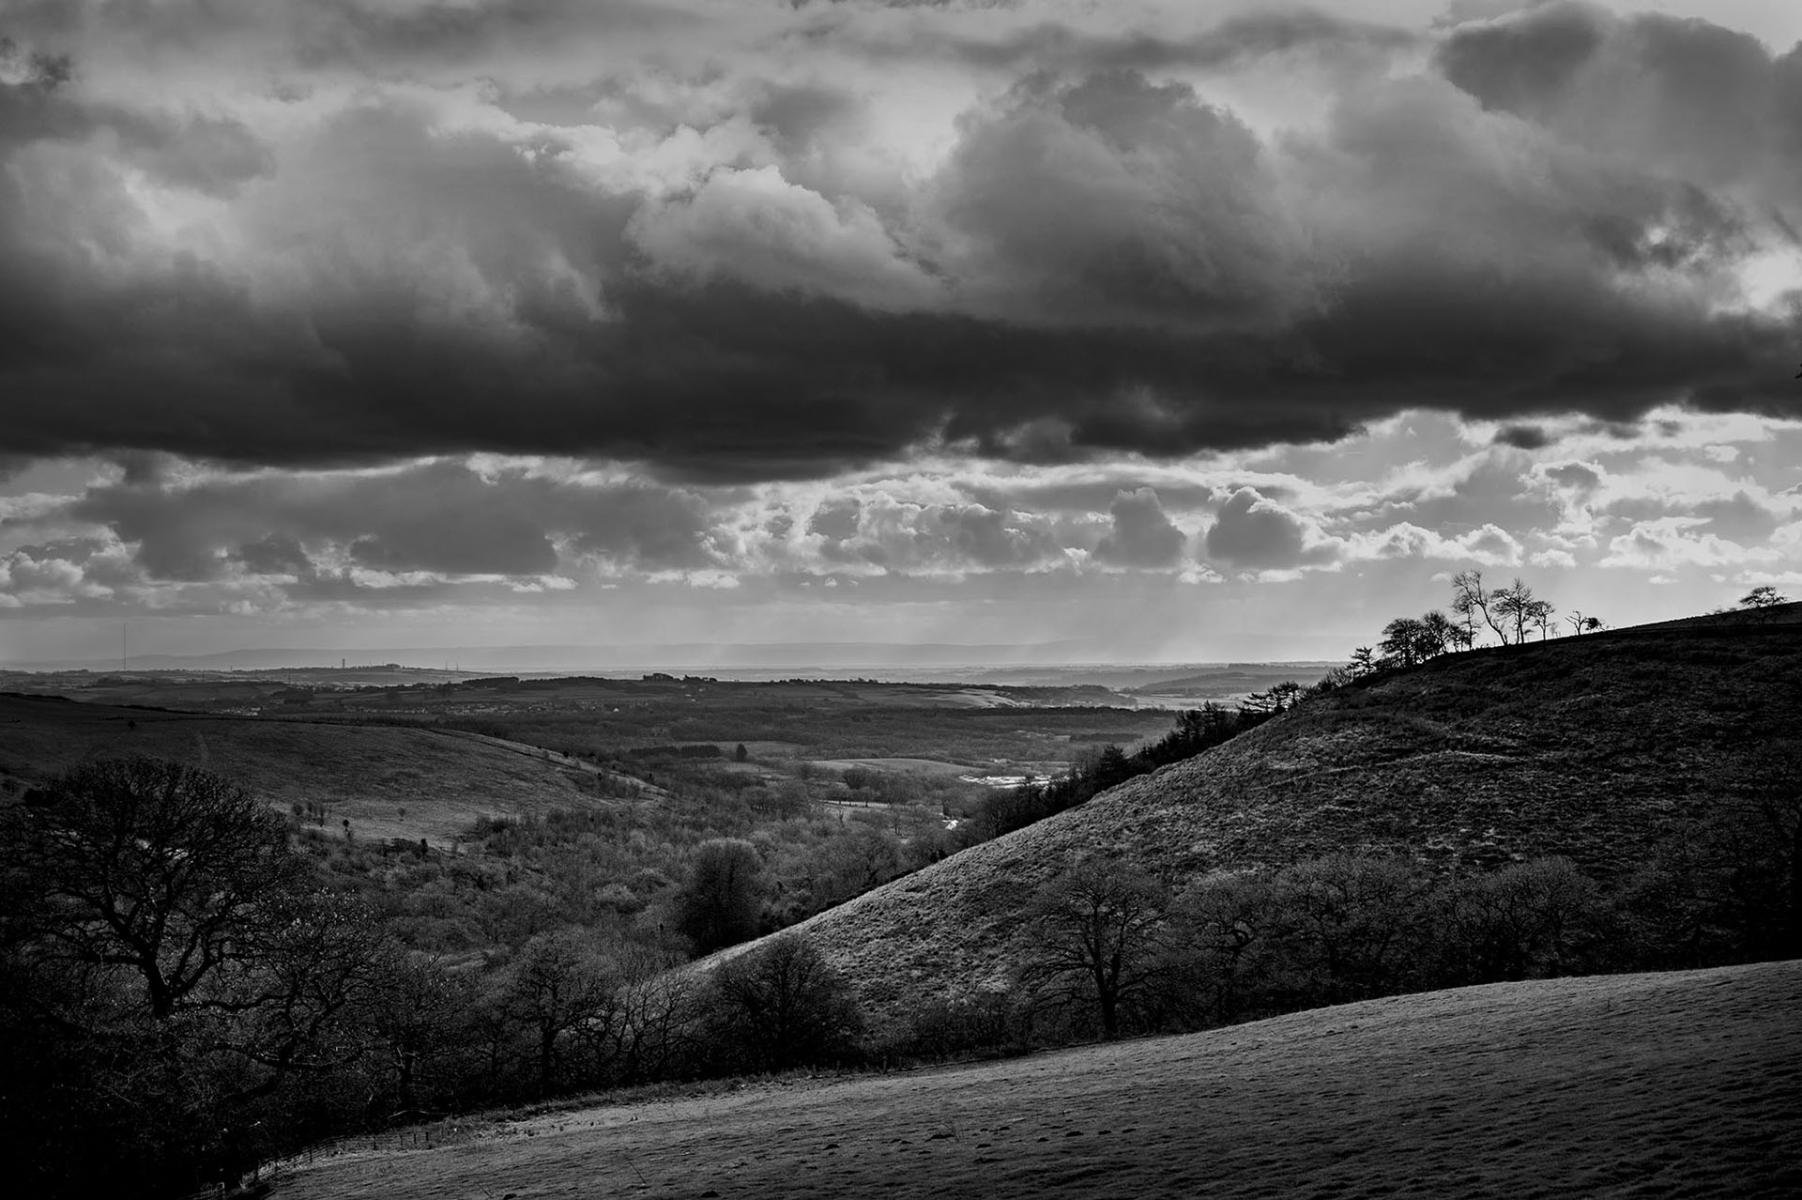 Towards-the-Severn-from-Ewenny-Fach-south-wales-landscape-photography